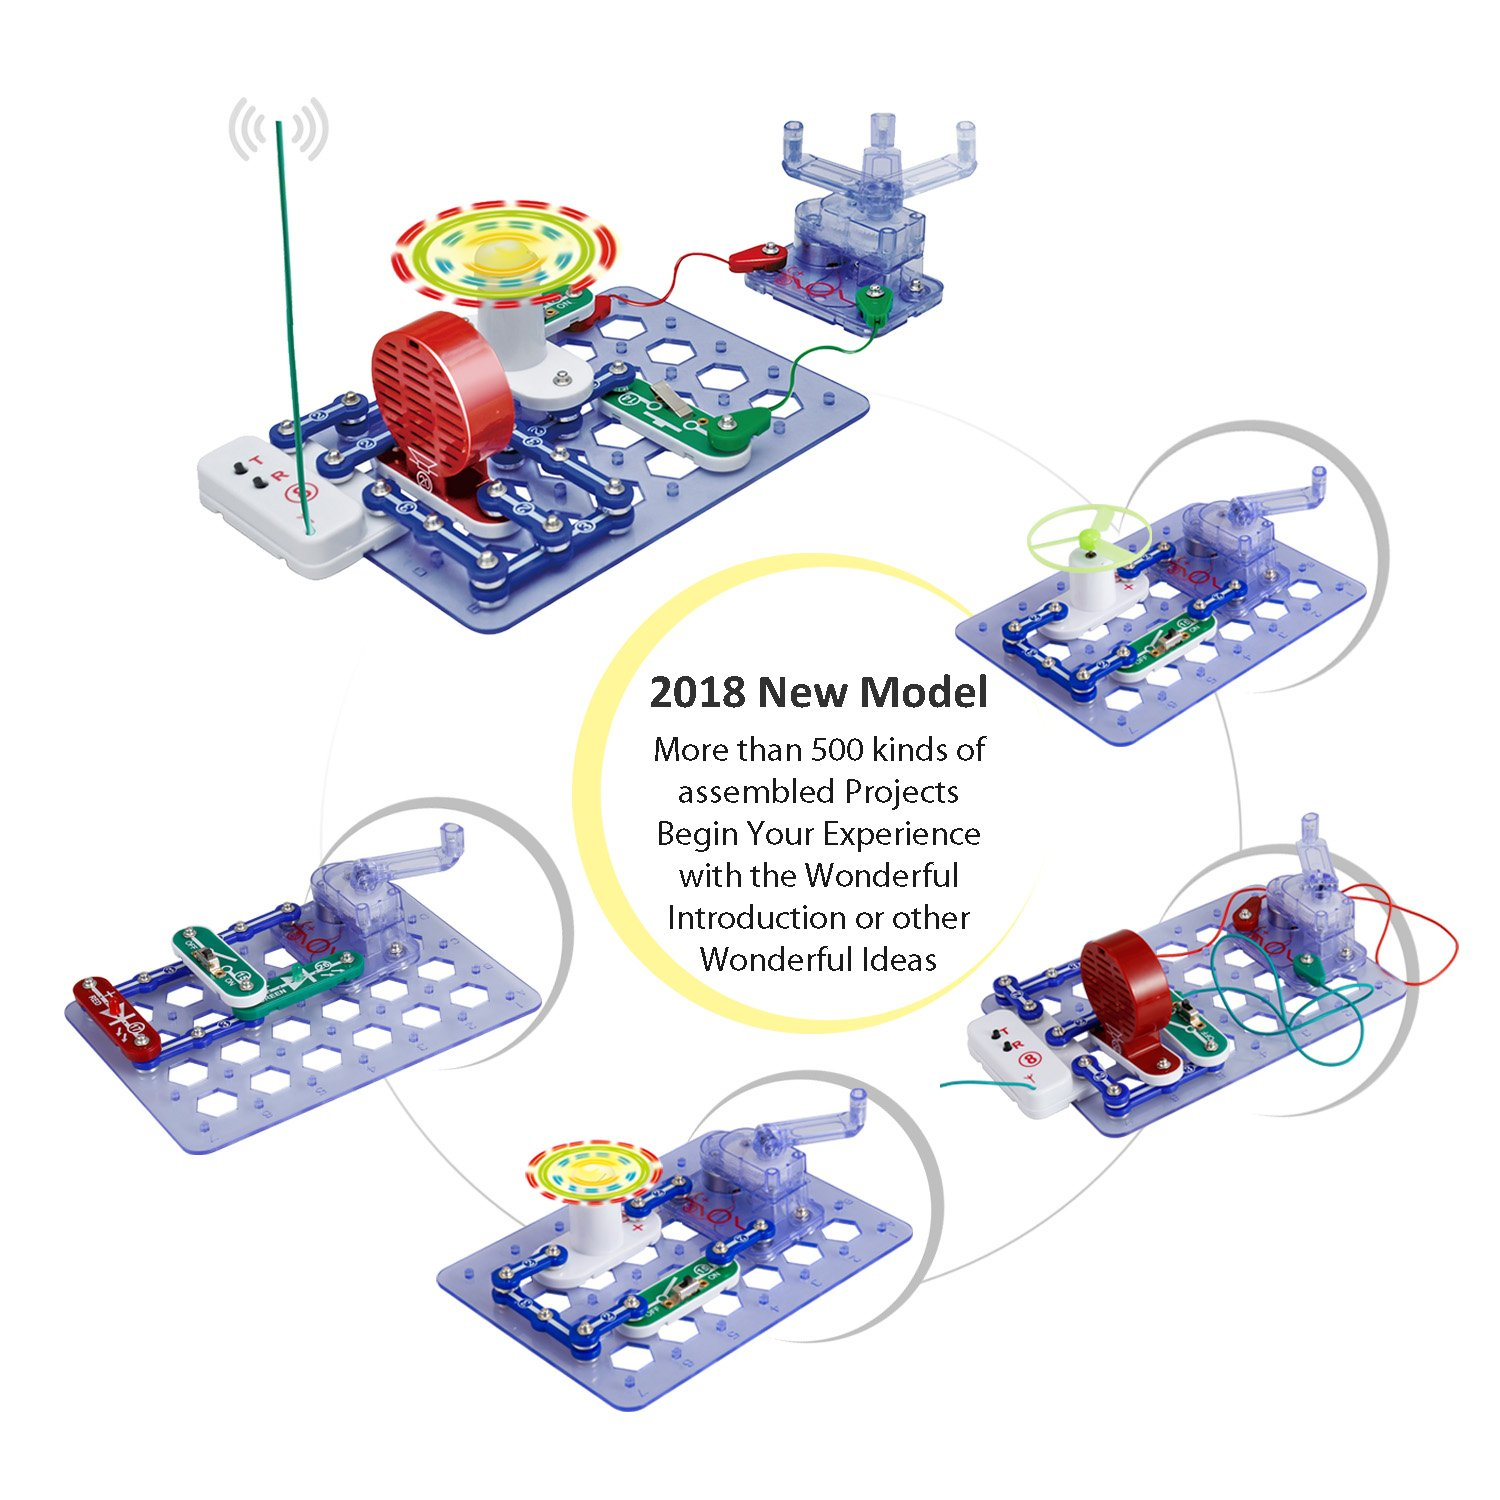 Bable Buckles Circuits Stem Toys Science Experiments Snap Snaptricity Kit Build 75 Projects Kids Electronics Discovery Manual Electrical Generator 500 Games